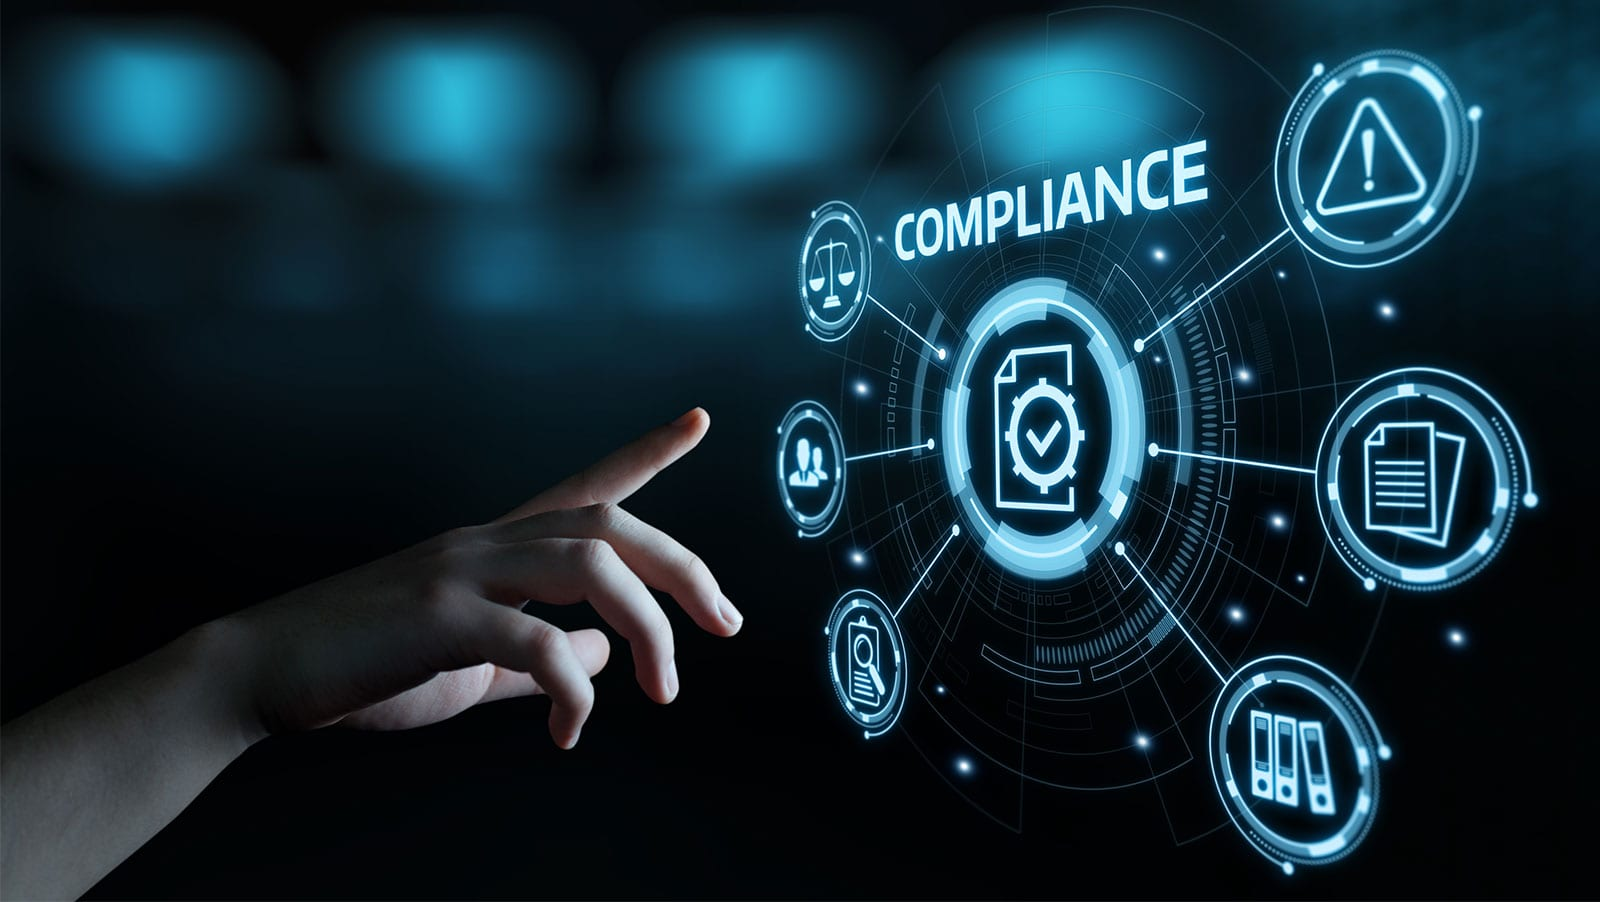 beckys-affiliated-how-smps-compliance-365-program-solves-problems-for-operators-video2-min